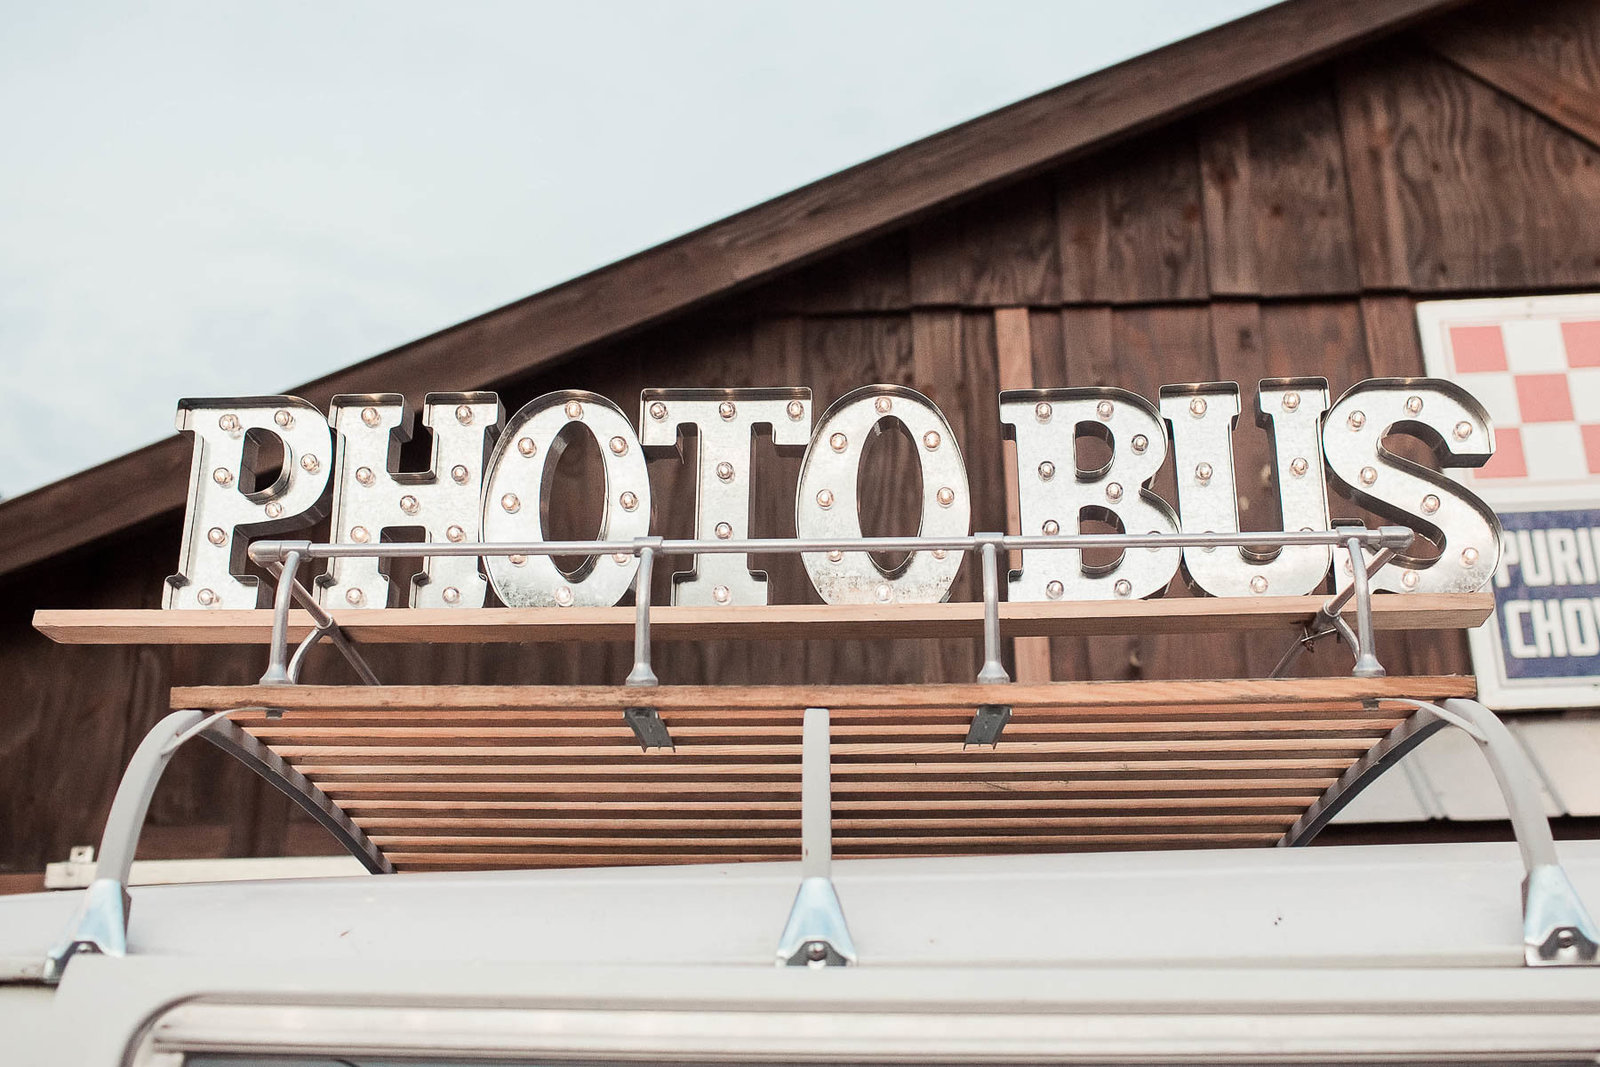 Photo bus is set up for reception, Boals Farm, Charleston, South Carolina